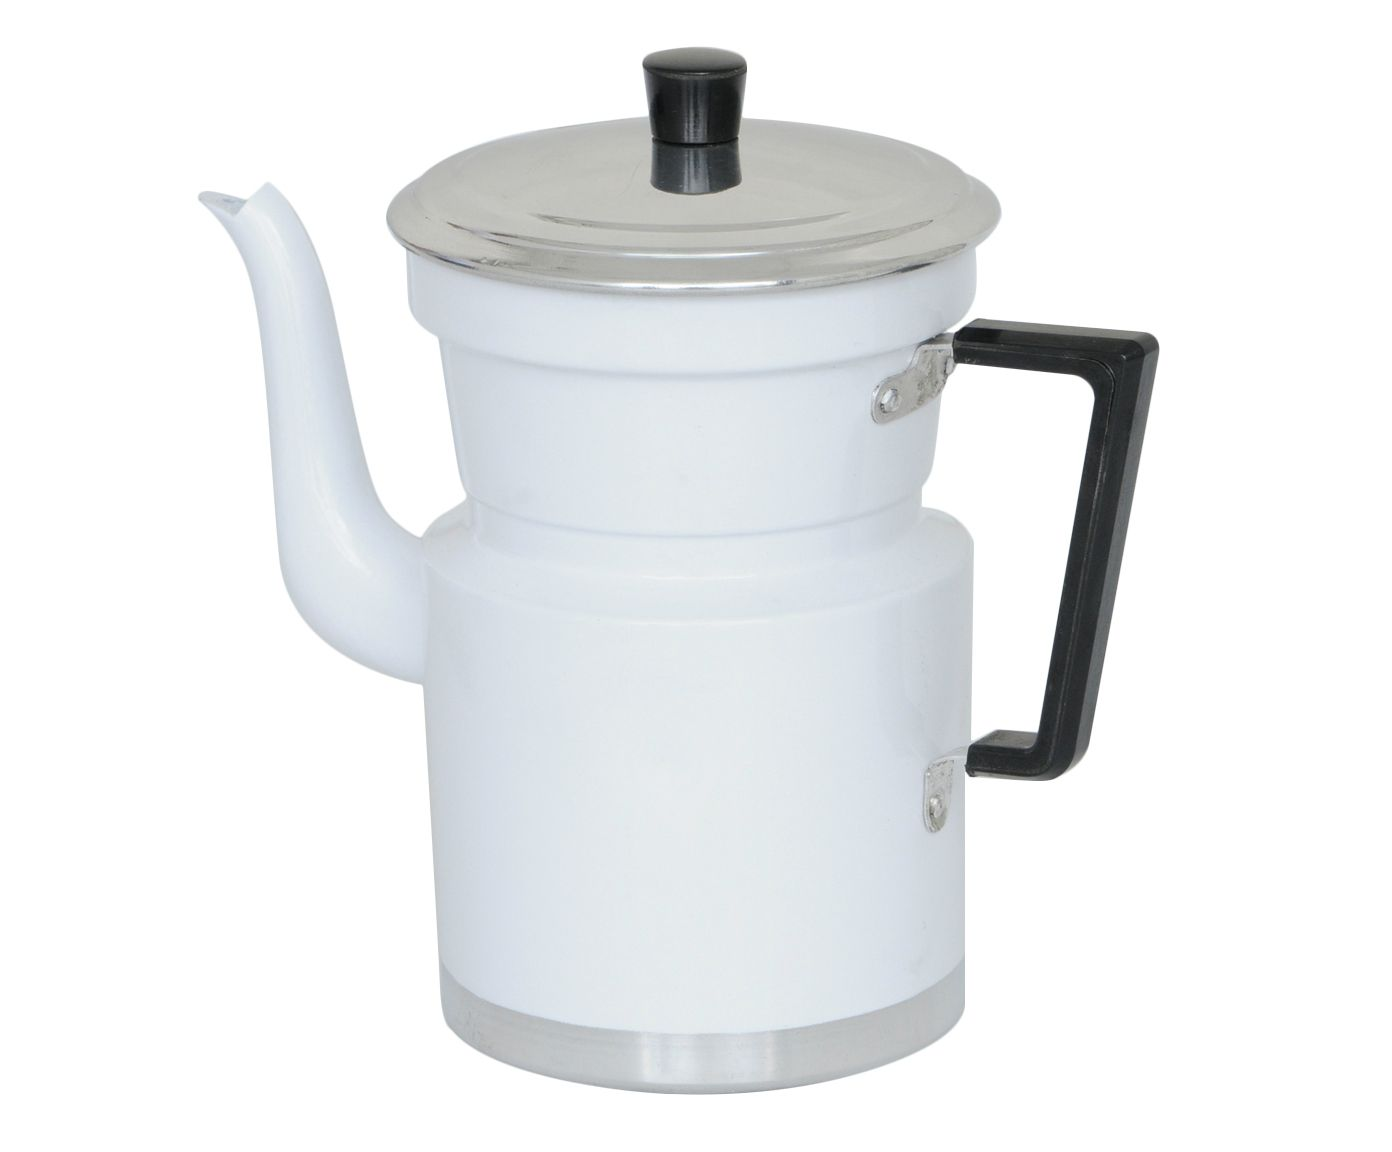 Cafeteira Bowne Branca - 1,5L | Westwing.com.br